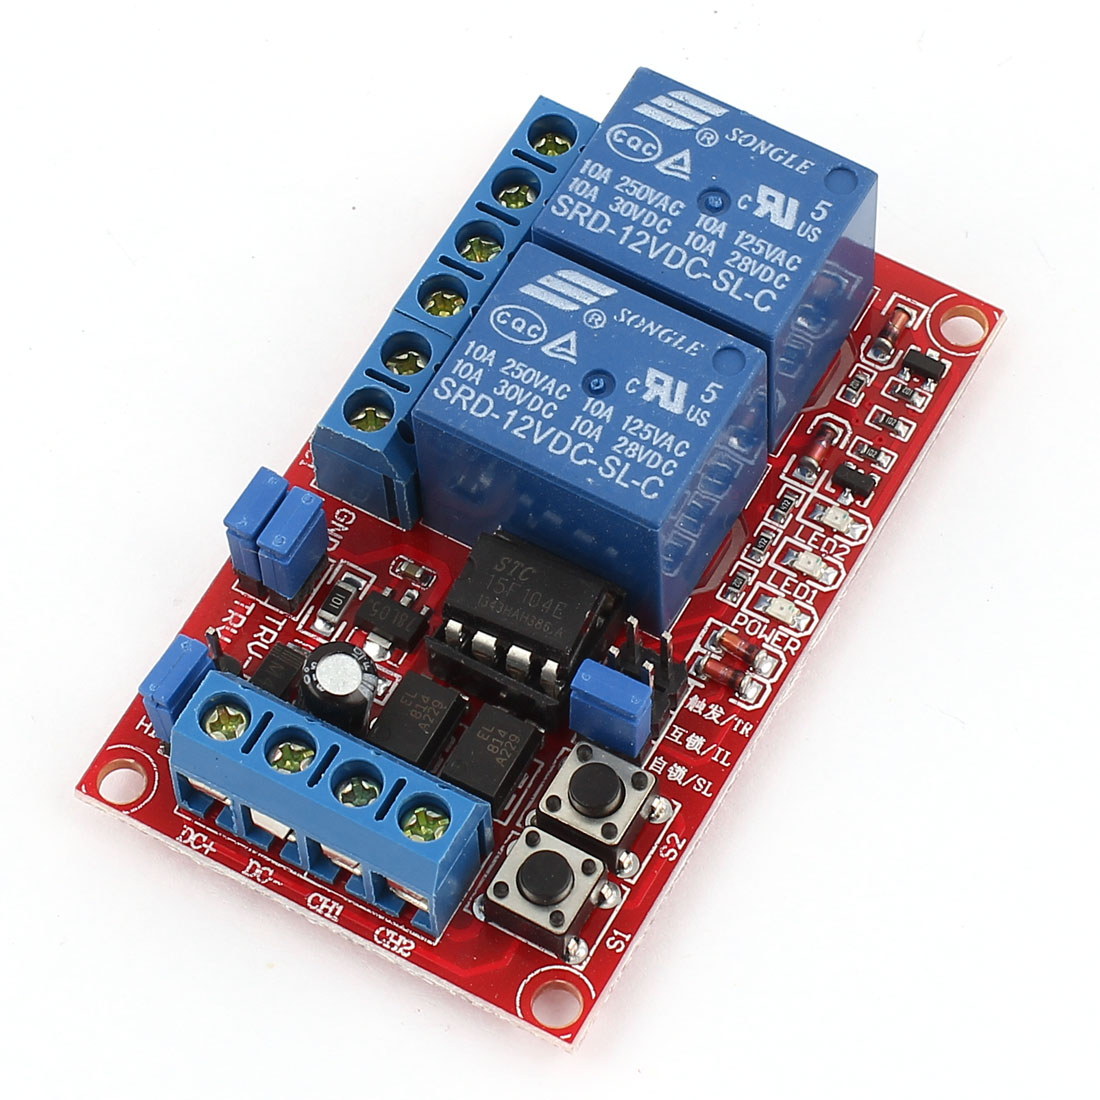 DC 12V 2 Channel Self-lock Interlock Triggered Relay Module for PIC